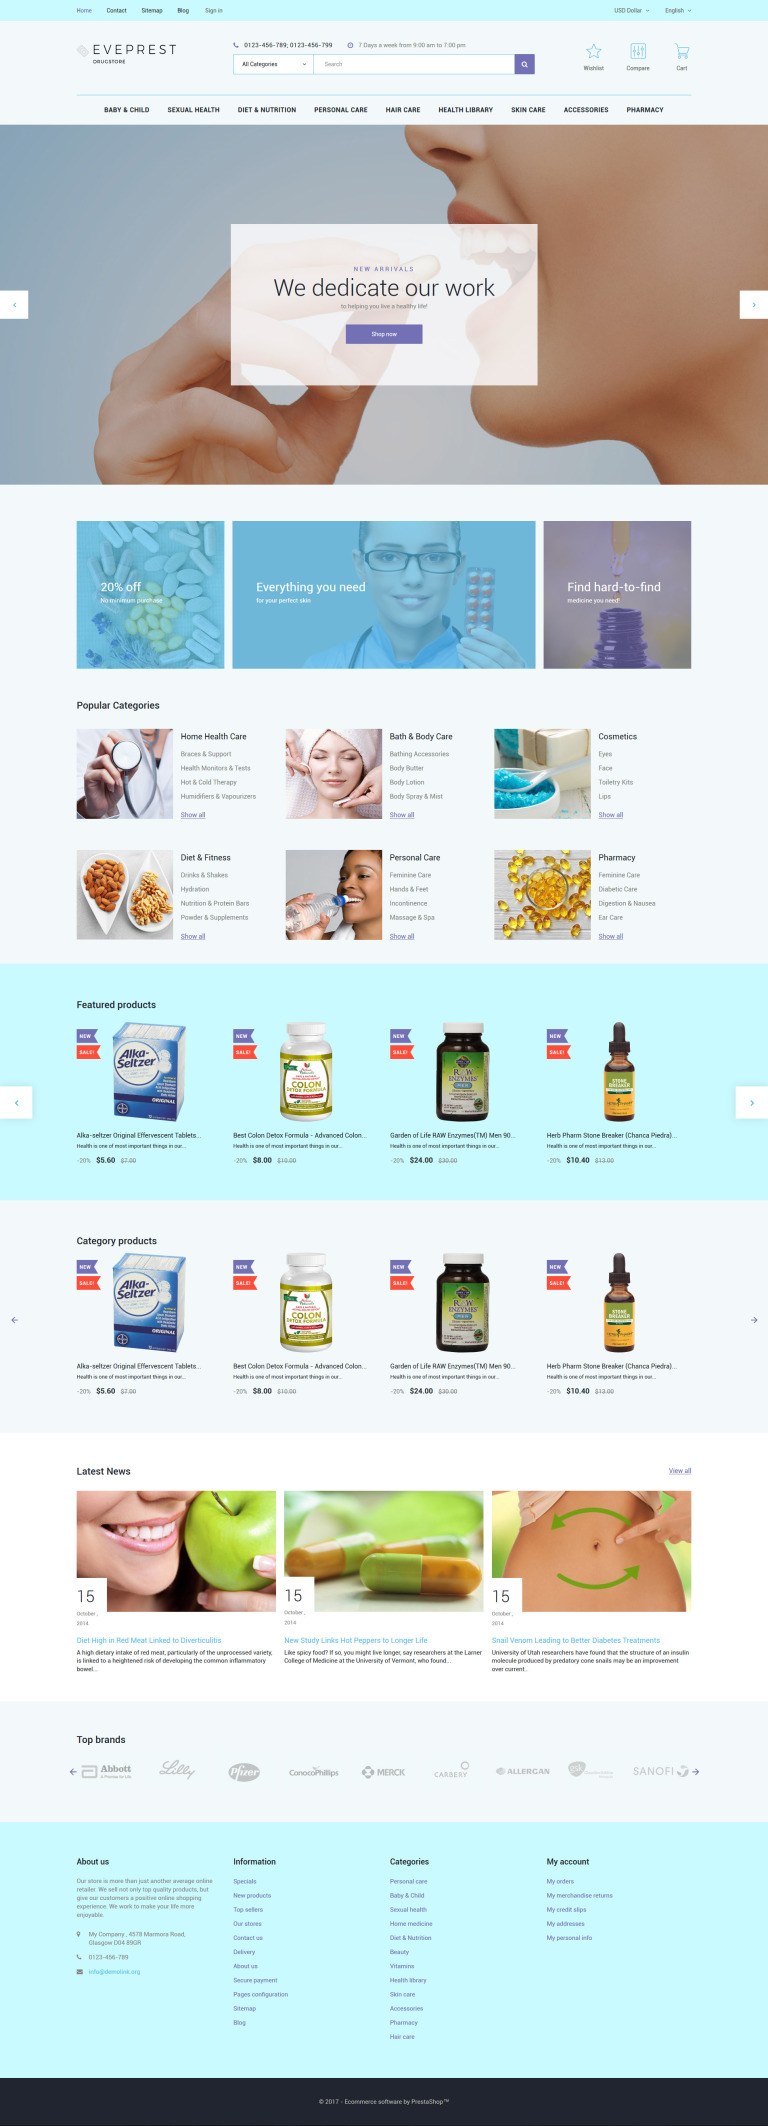 Eveprest - Drugstore PrestaShop Theme New Screenshots BIG